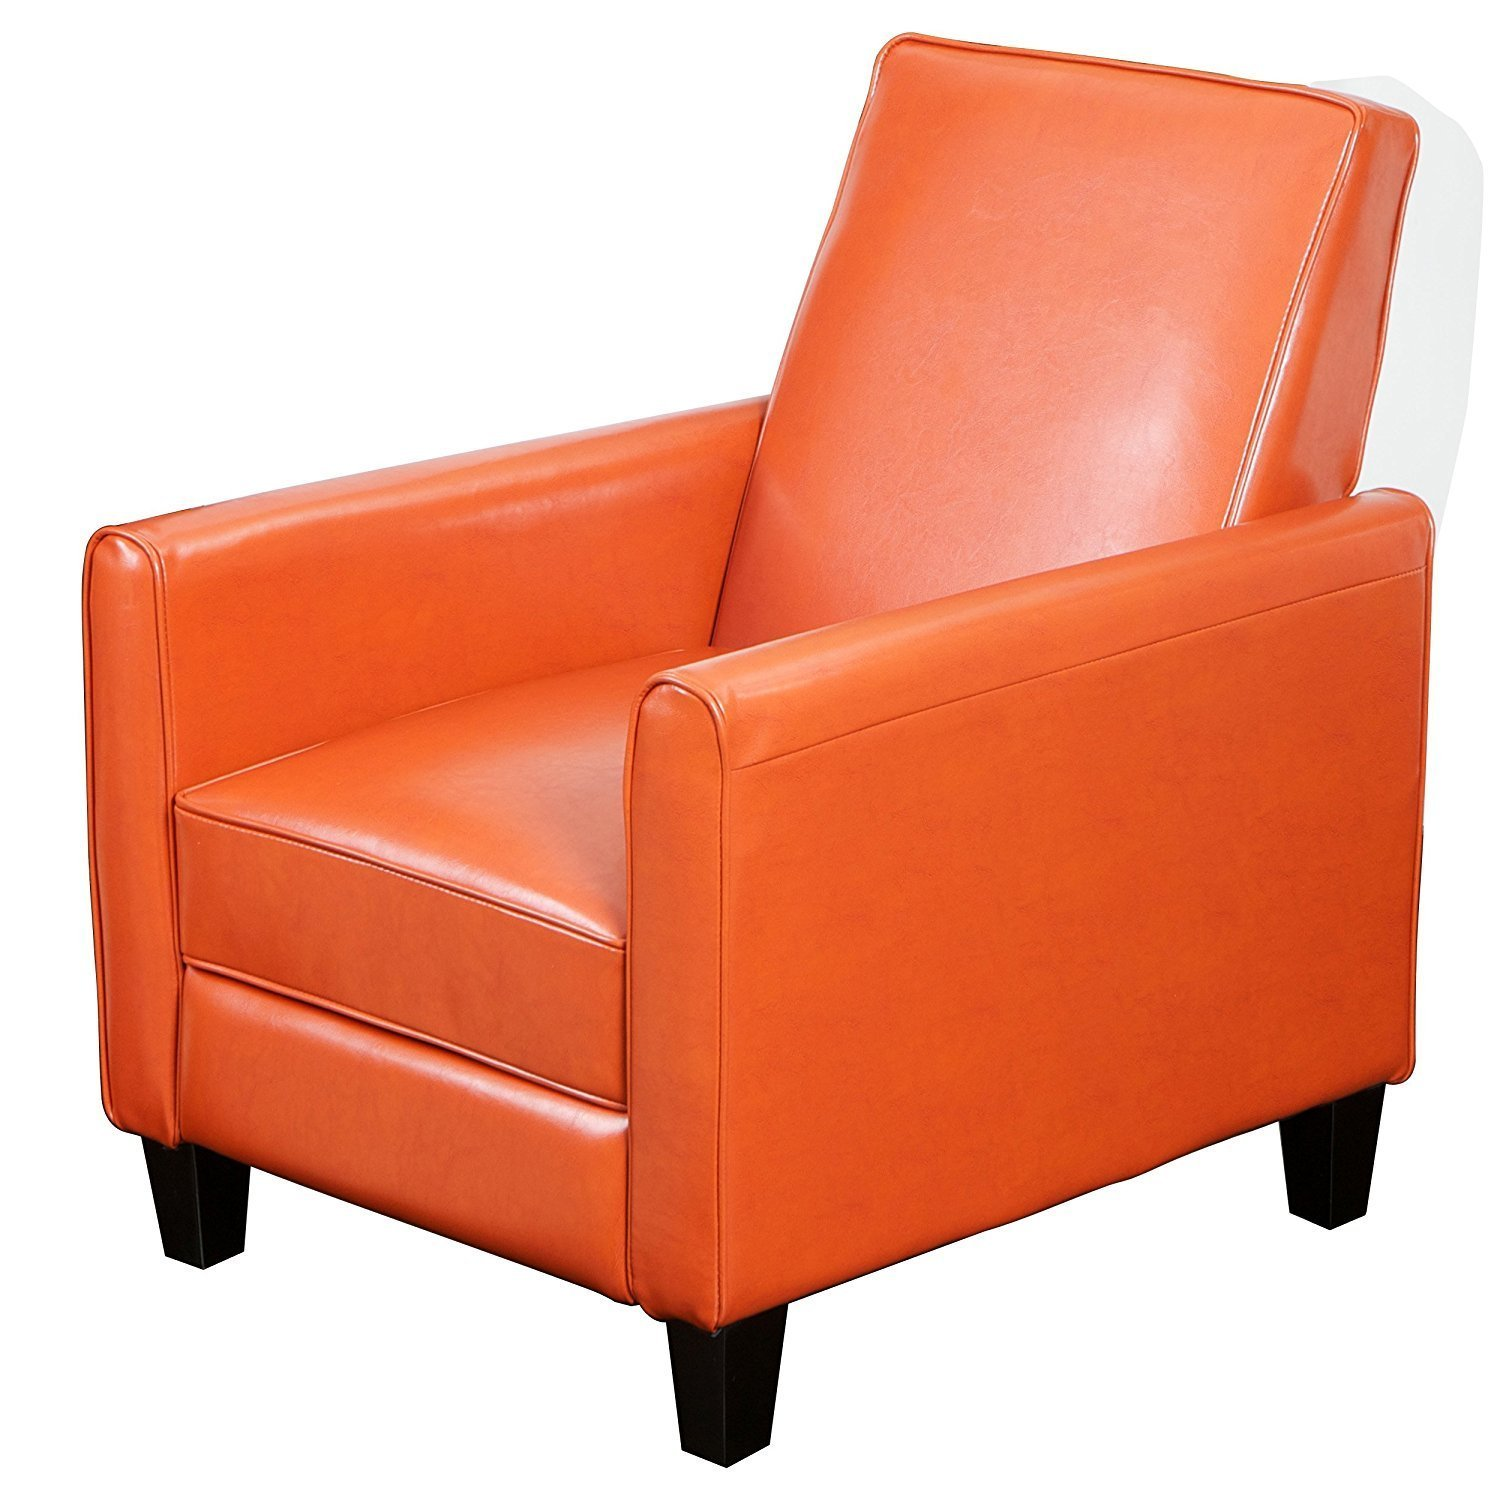 Orange Living Room Chair Orange Living Room Chair Home Furniture Design